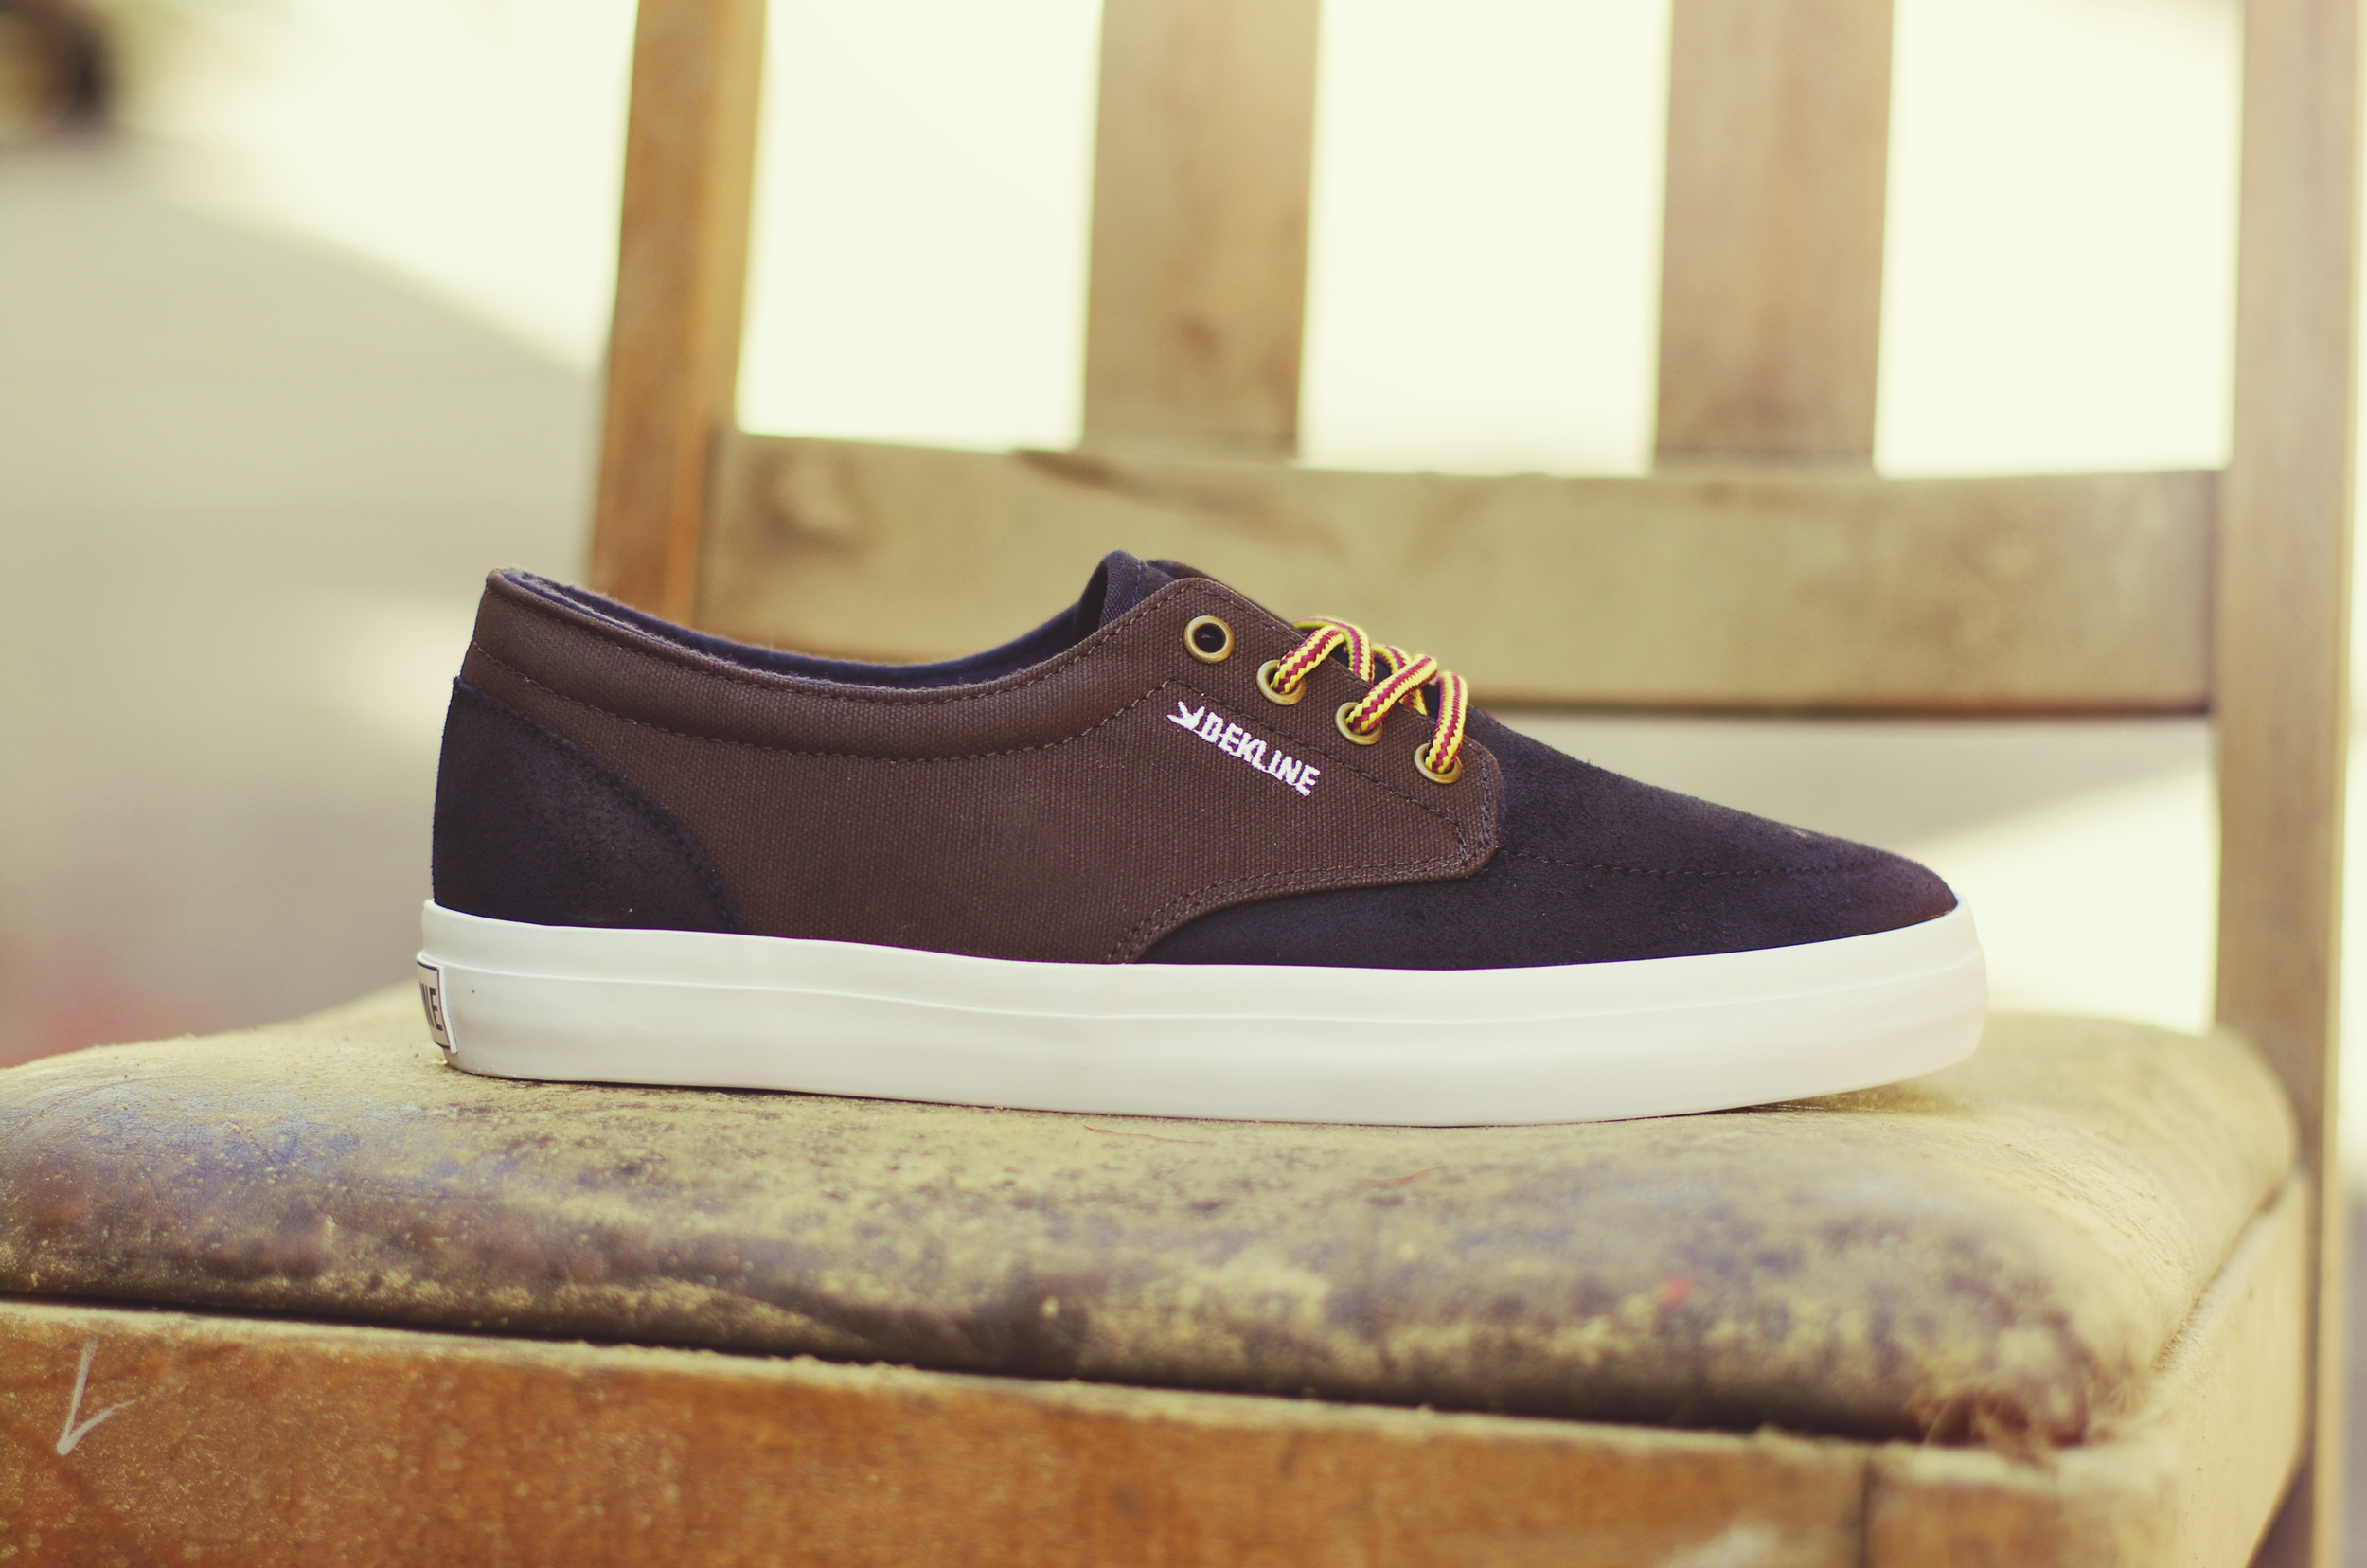 Mason - $65 (Brown/Navy/White) This shoe comes in a brown canvas/black suede upper with white vulc sole, metal eyelets and work boot laces.